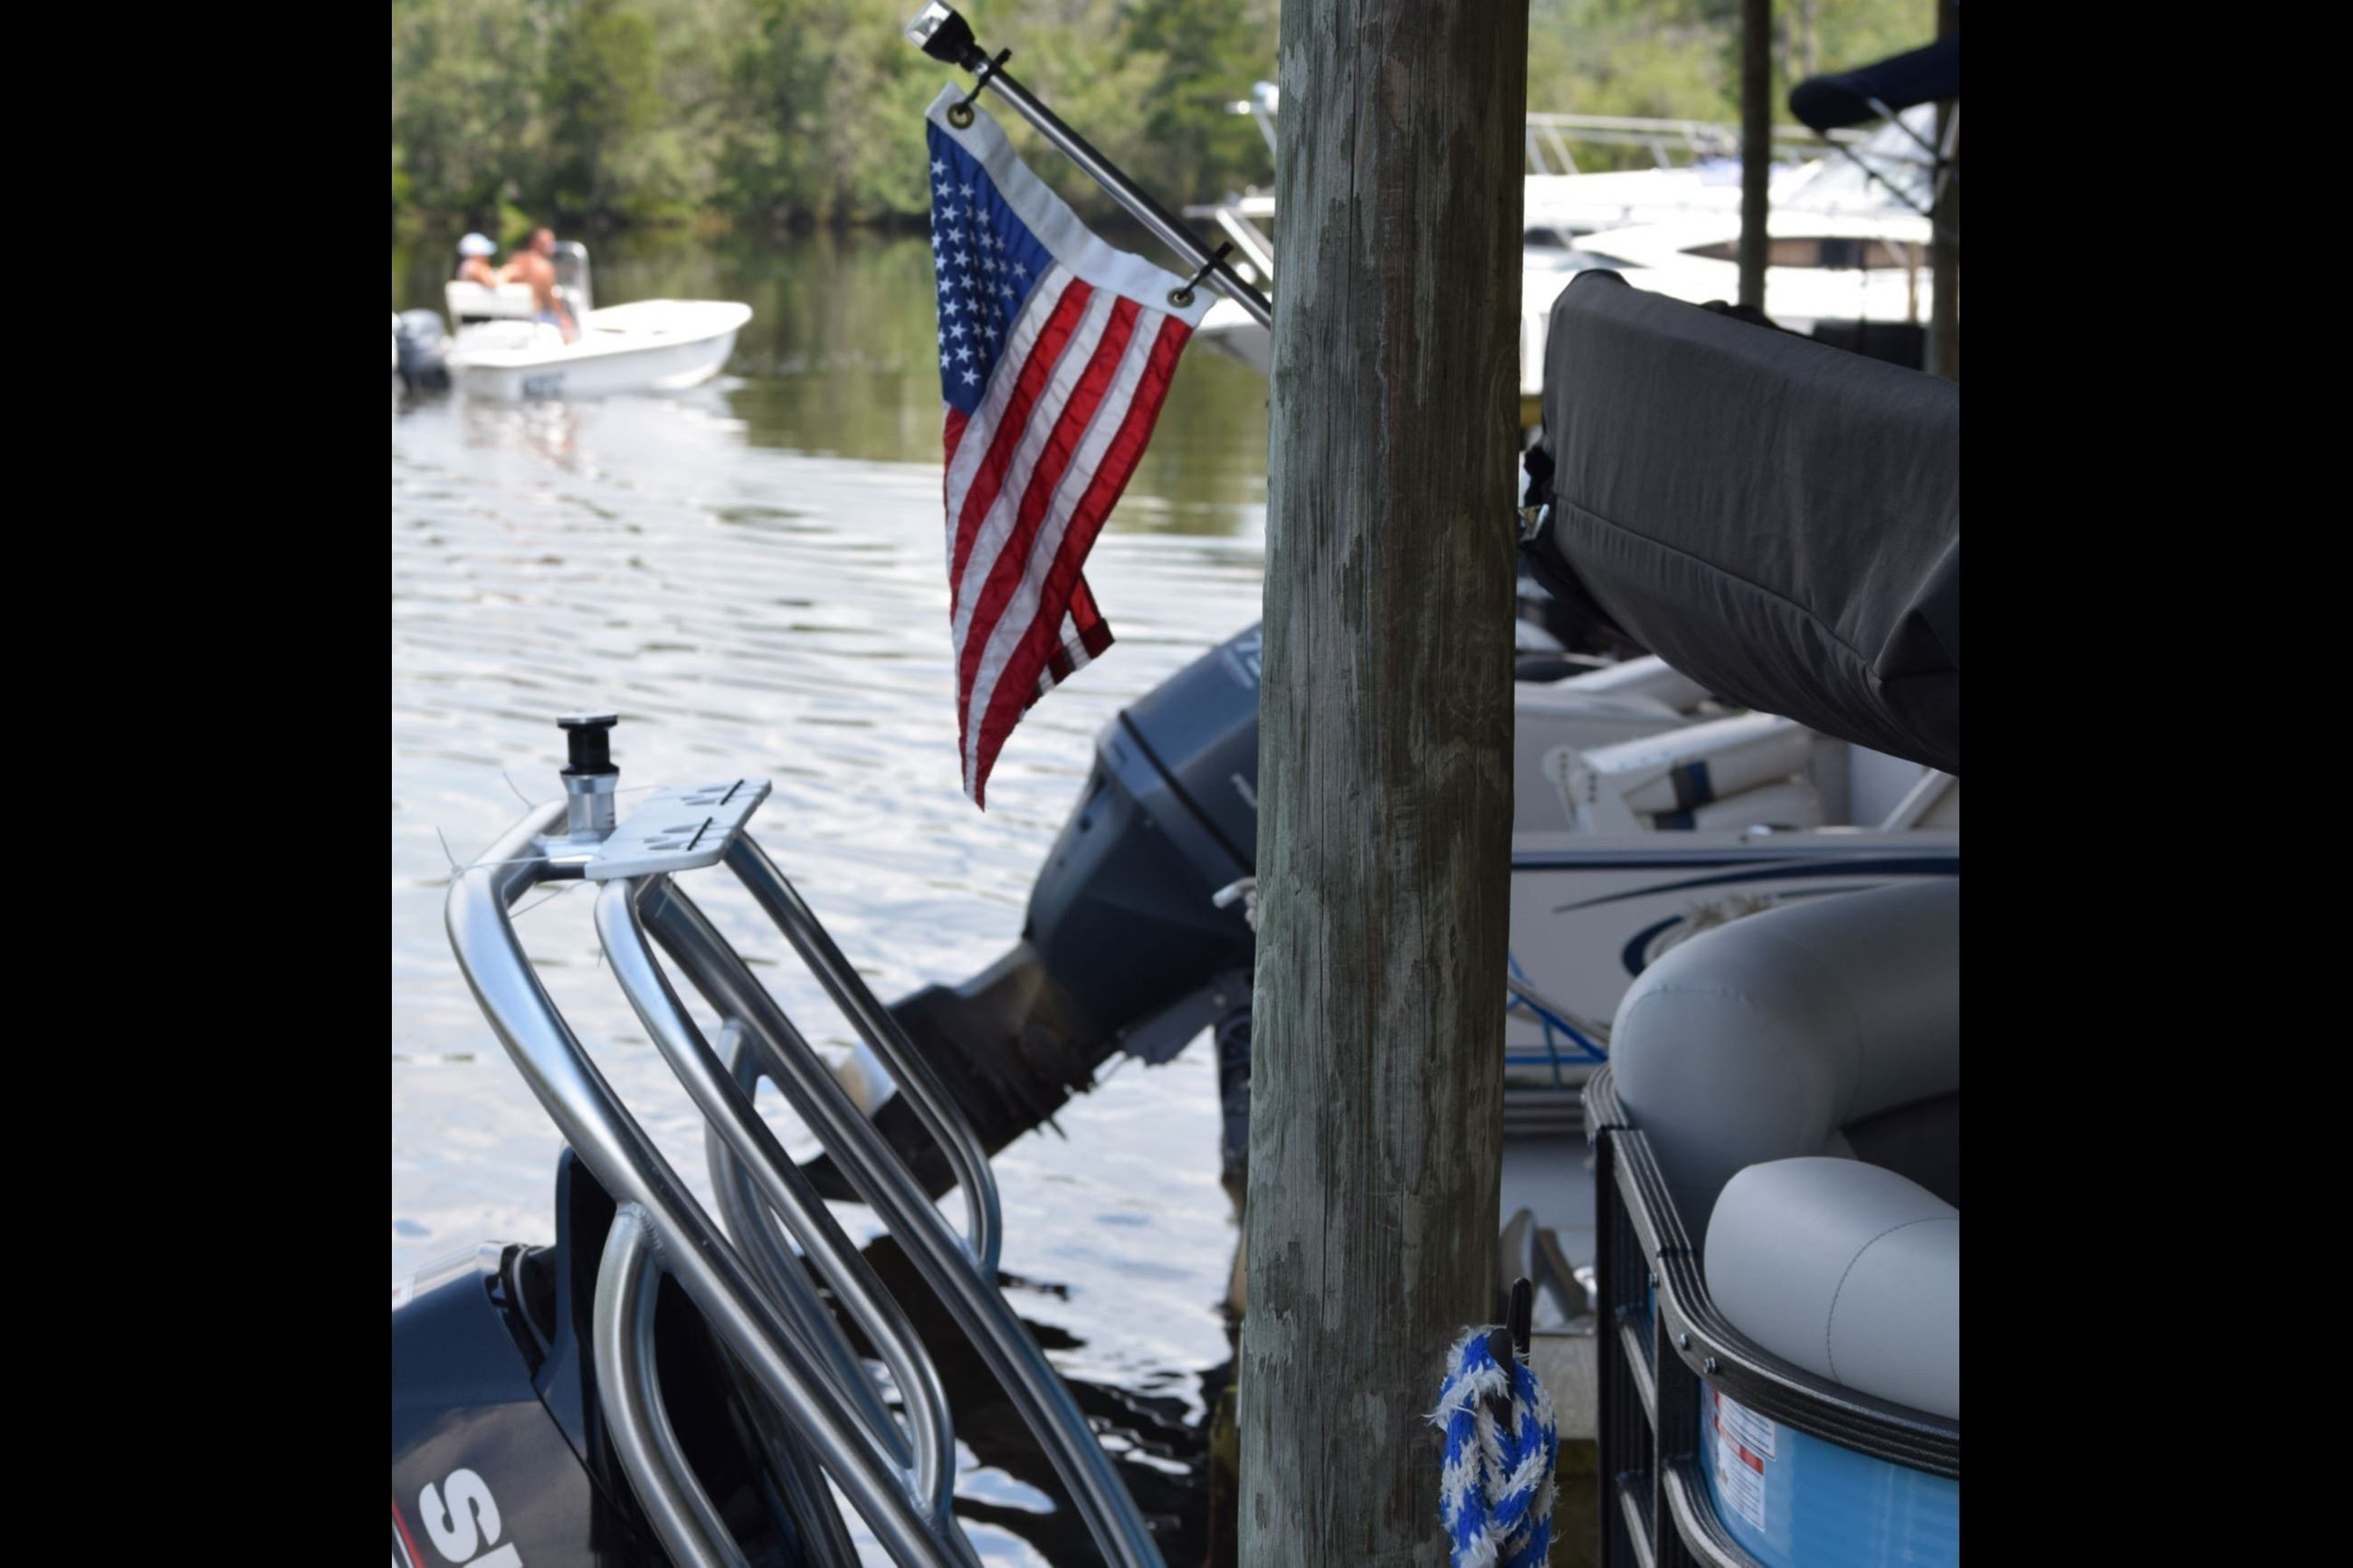 Wet slip at city marina with American flag and Blackwater River